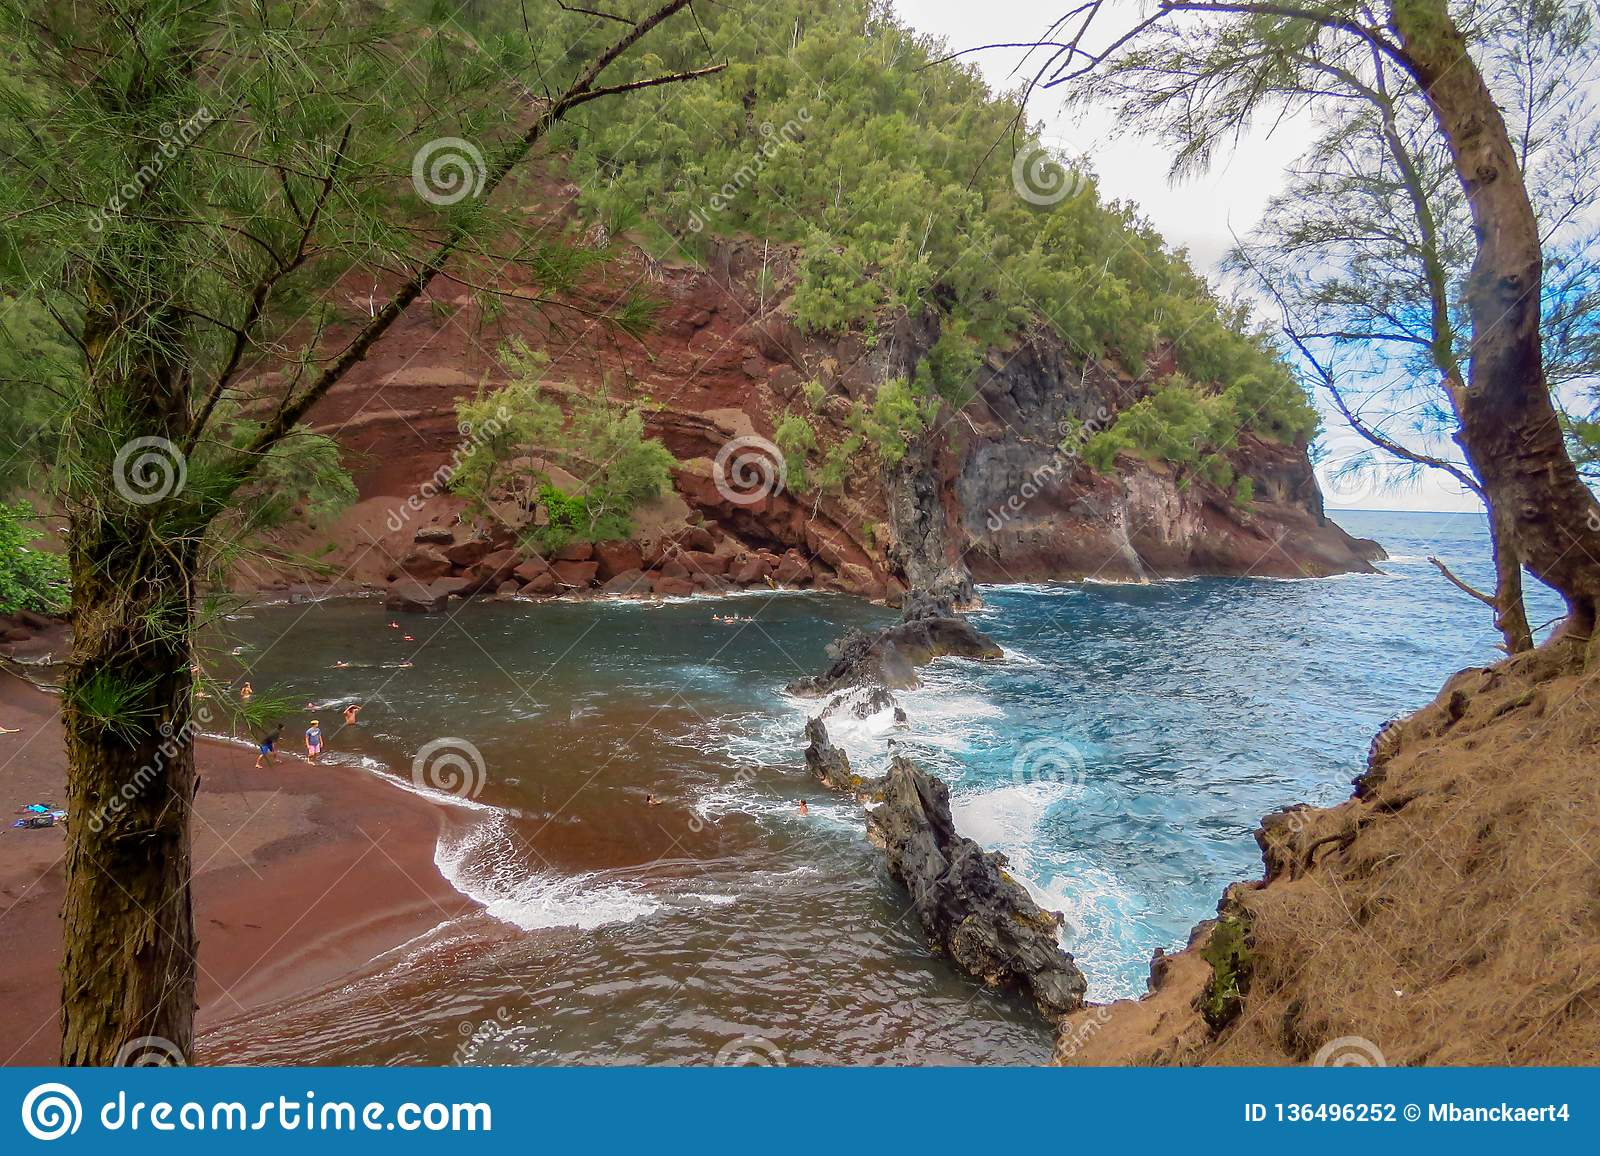 50b4d524cb Red sand beach or Kaihalulu Beach is a hidden cove with waves of the  pacific ocean breaking on the rocks near the shore line